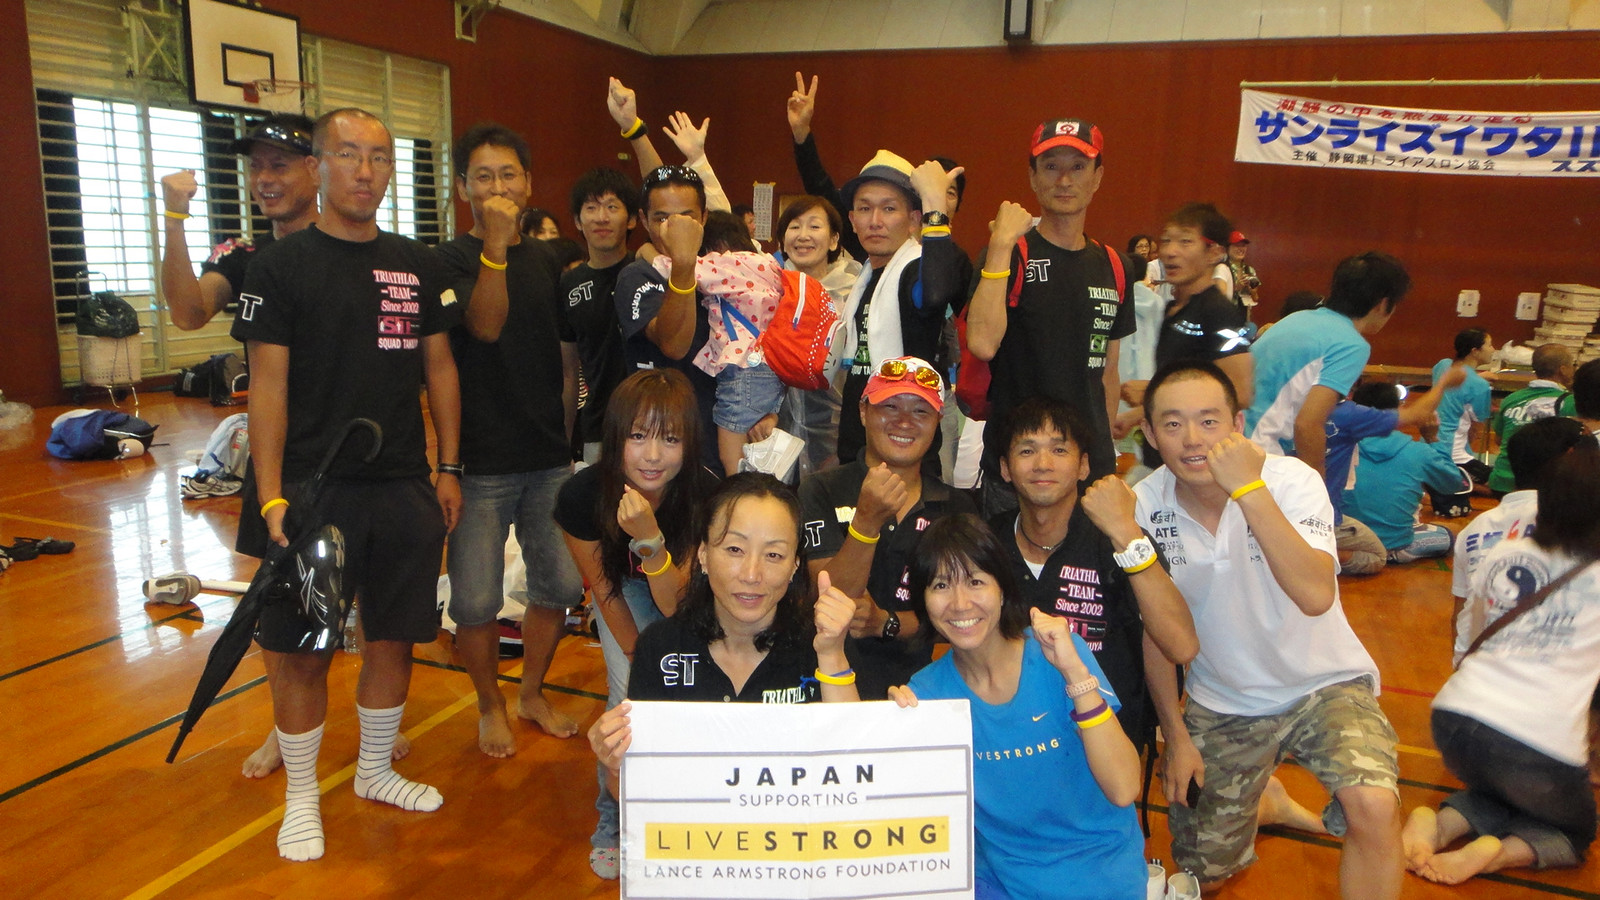 Livestrong02